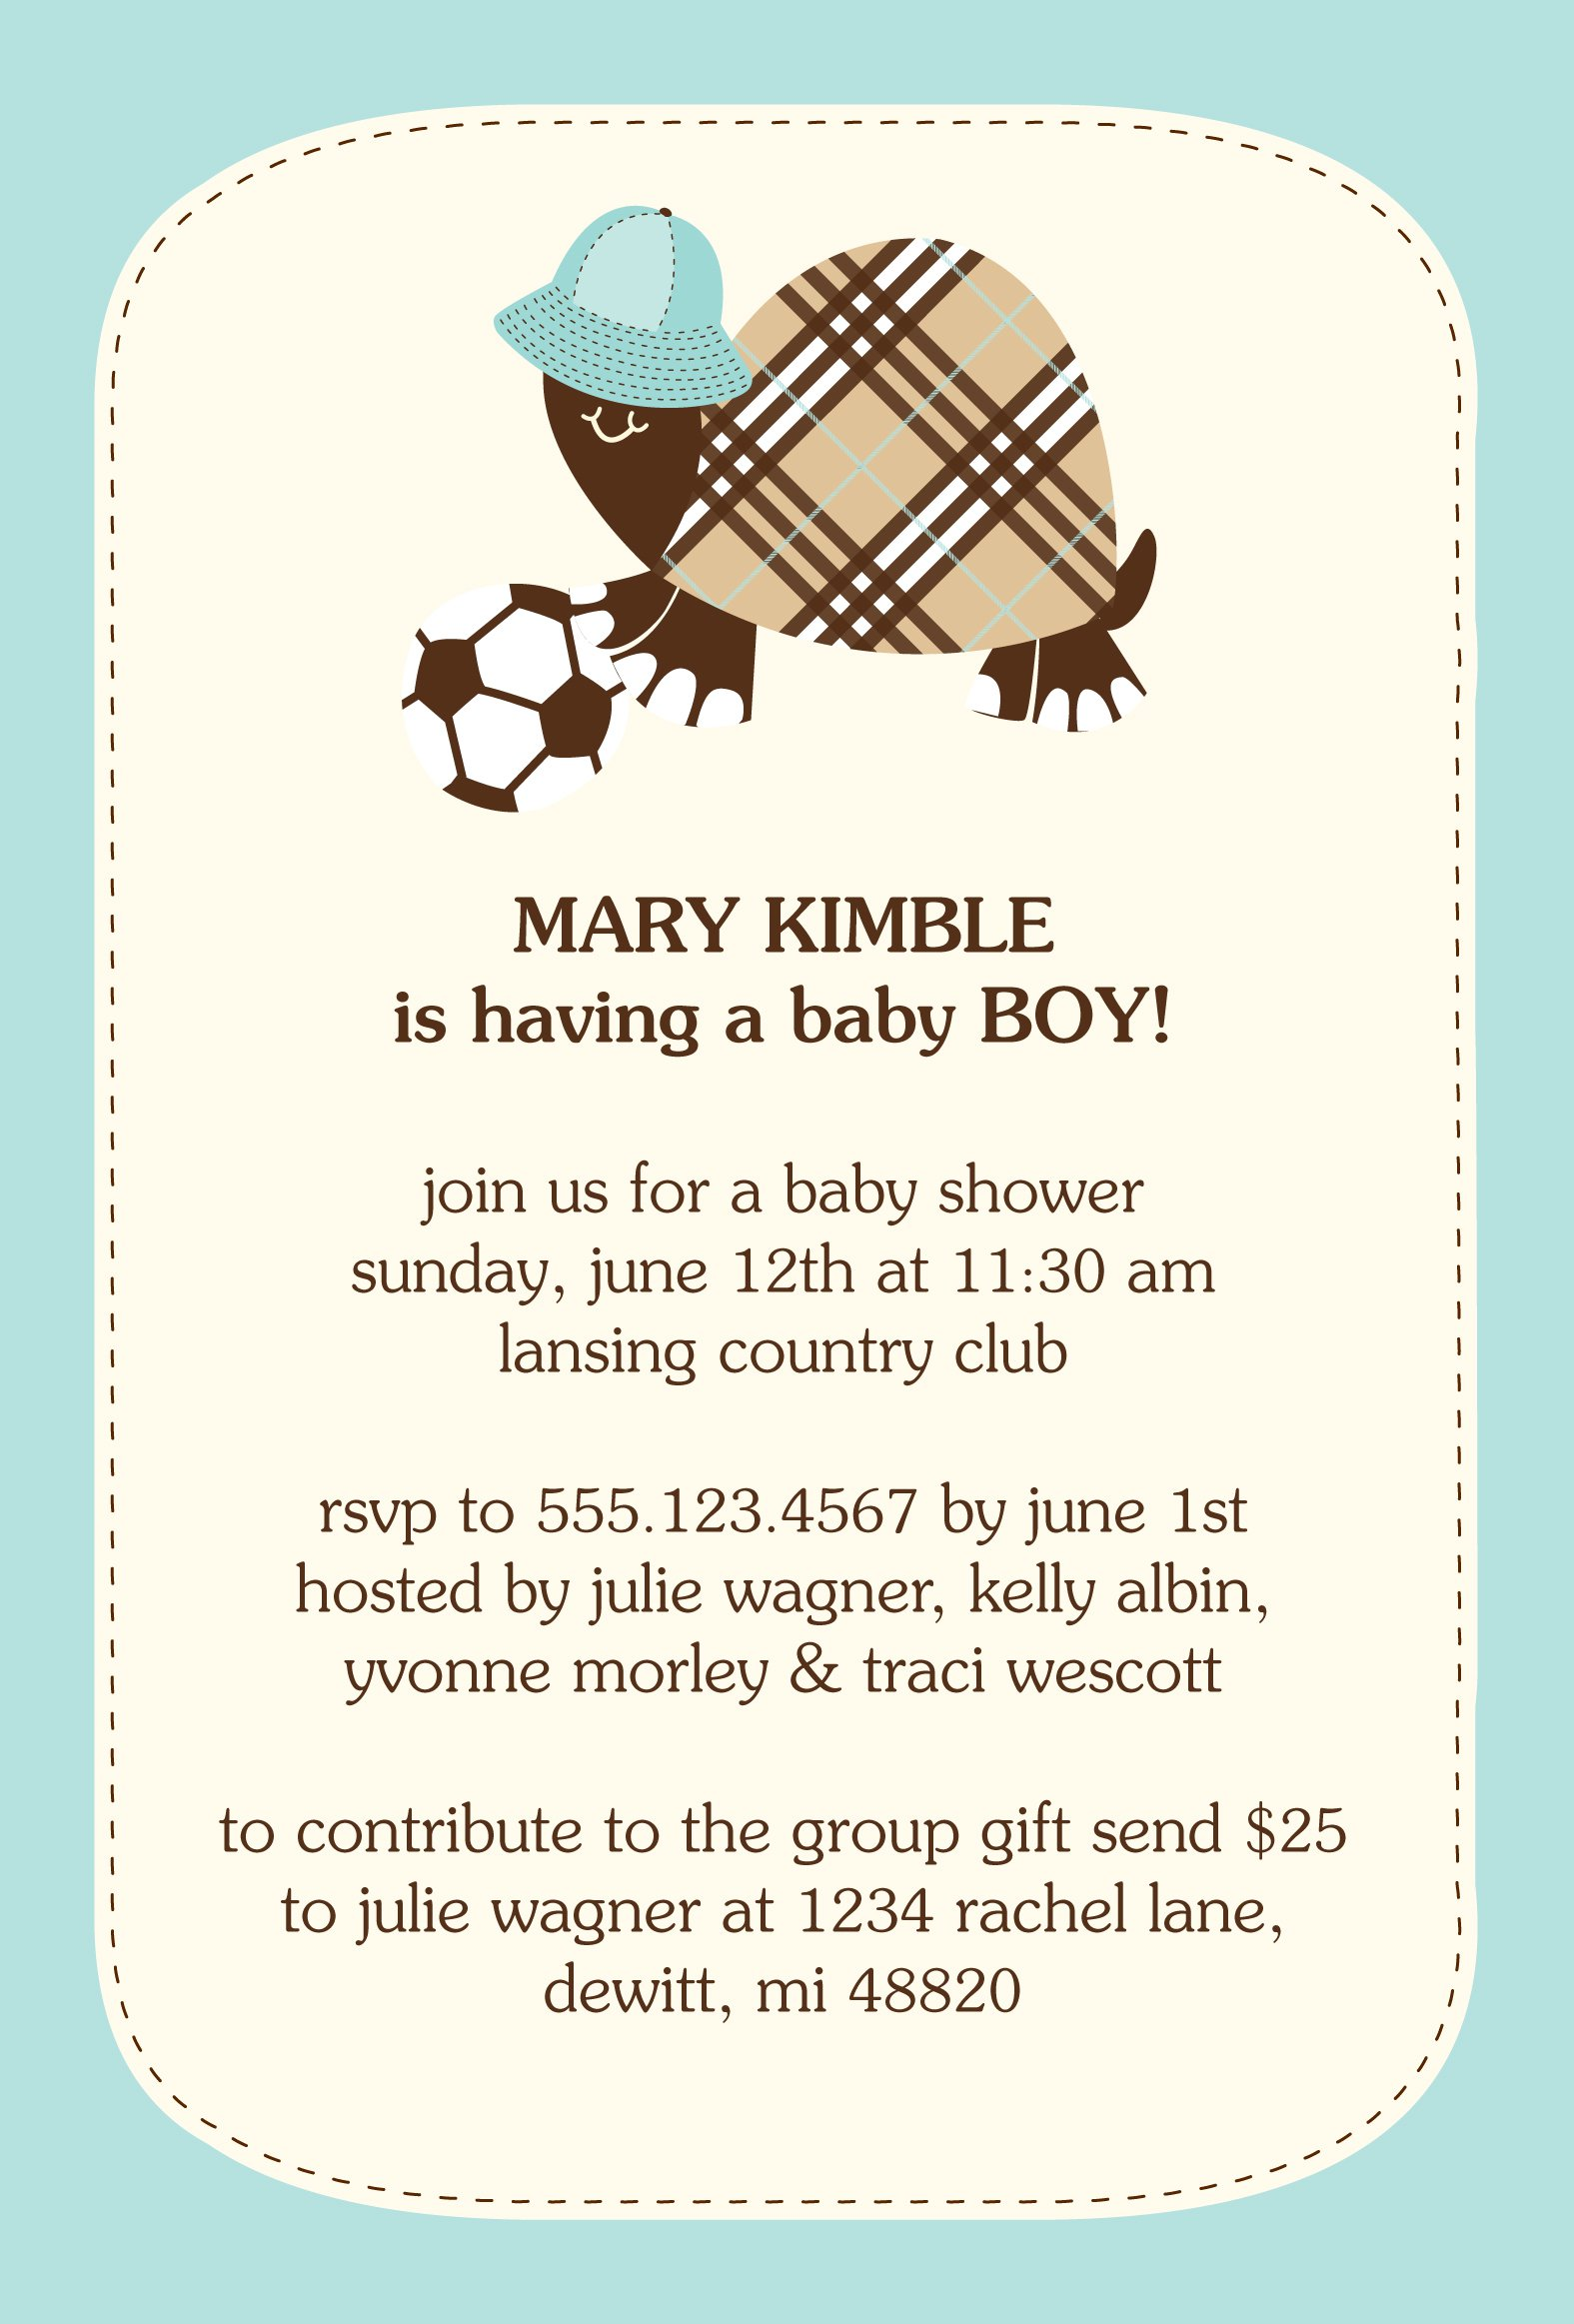 Full Size of Baby Shower:delightful Baby Shower Invitation Wording Picture Designs Baby Shower Halls With Baby Shower At The Park Plus Recuerdos De Baby Shower Together With Fun Baby Shower Games As Well As Baby Shower Hostess Gifts And Baby Shower Verses